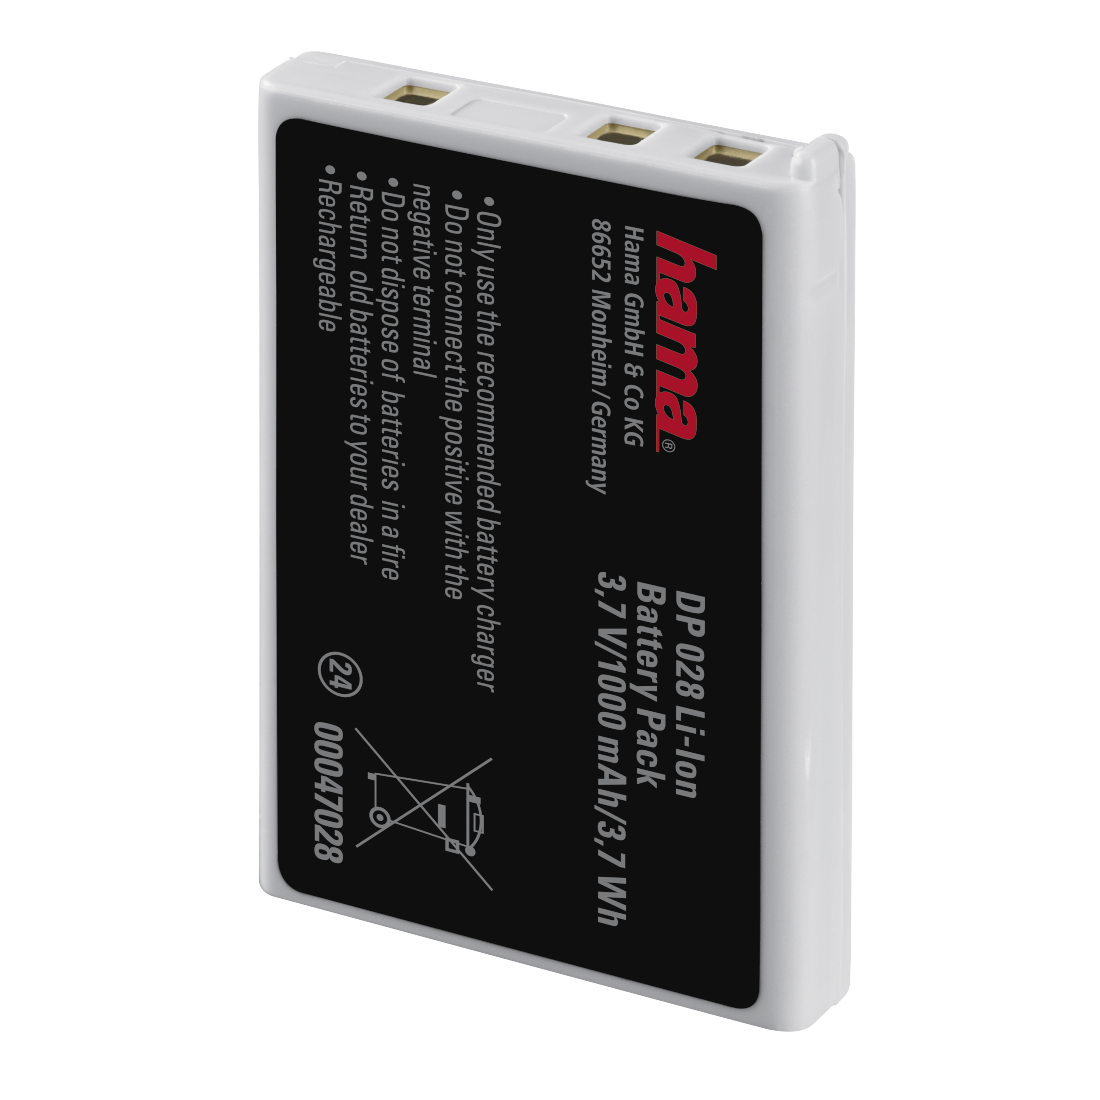 37 Volt Lithium Ion Battery Charger The Best 2018 Cellphone Circuit Of Lm317 2x 900mah 3 7v Li Usb For Sj4000 Sj5000s J6000